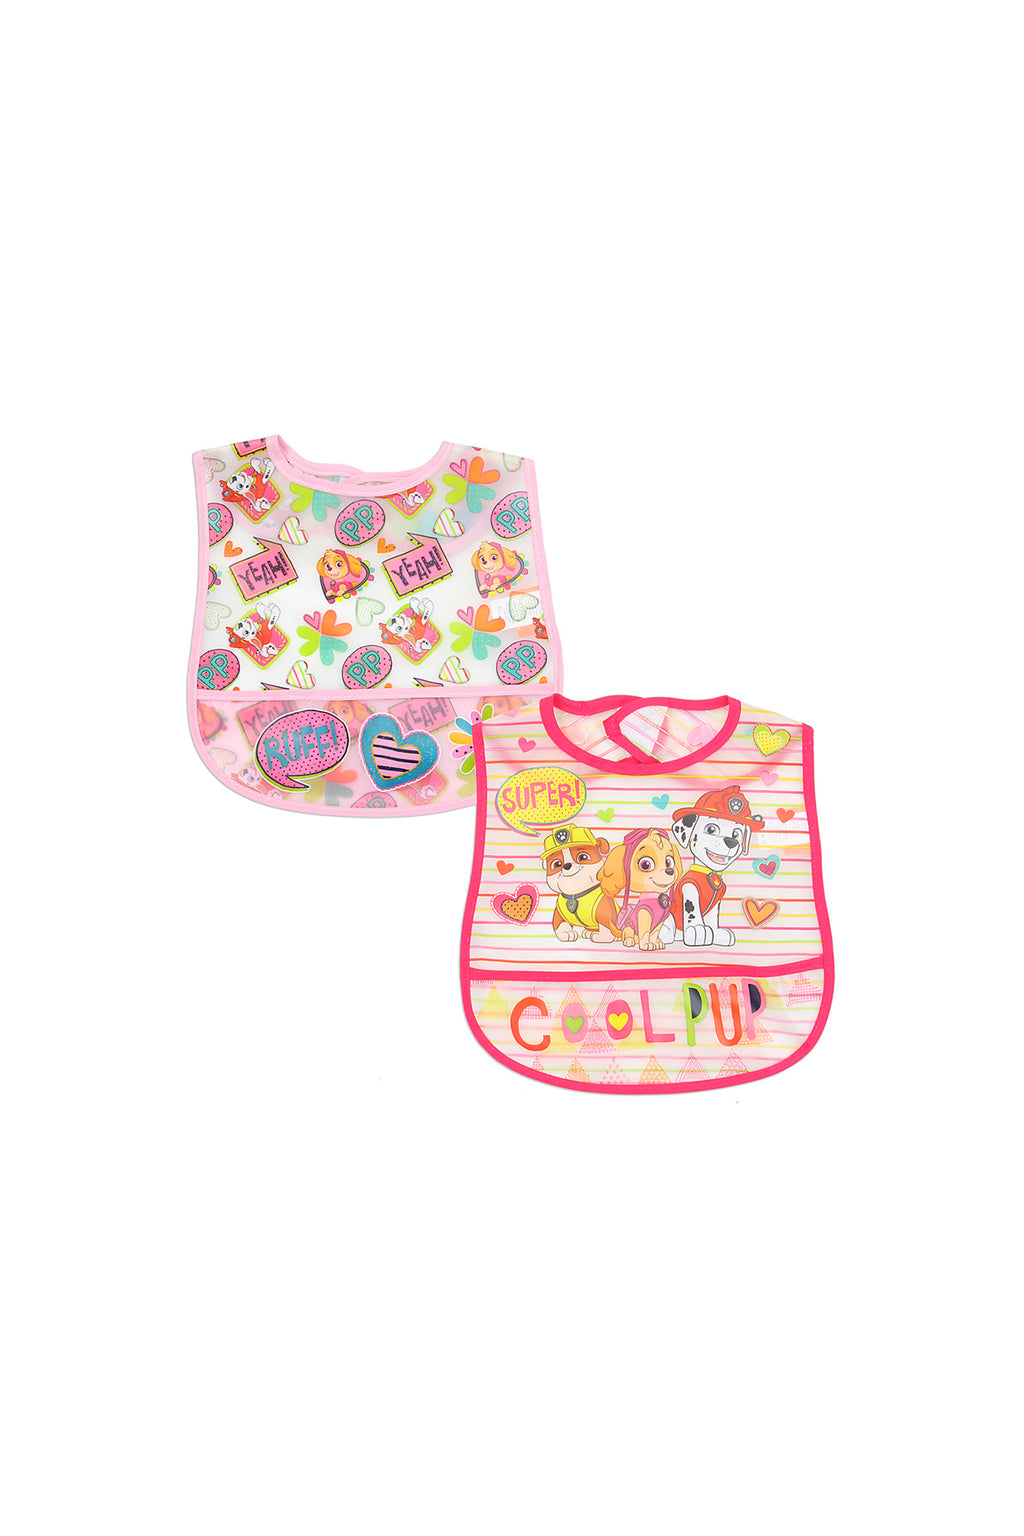 Paw Patrol 2 Pack Waterproof Bibs